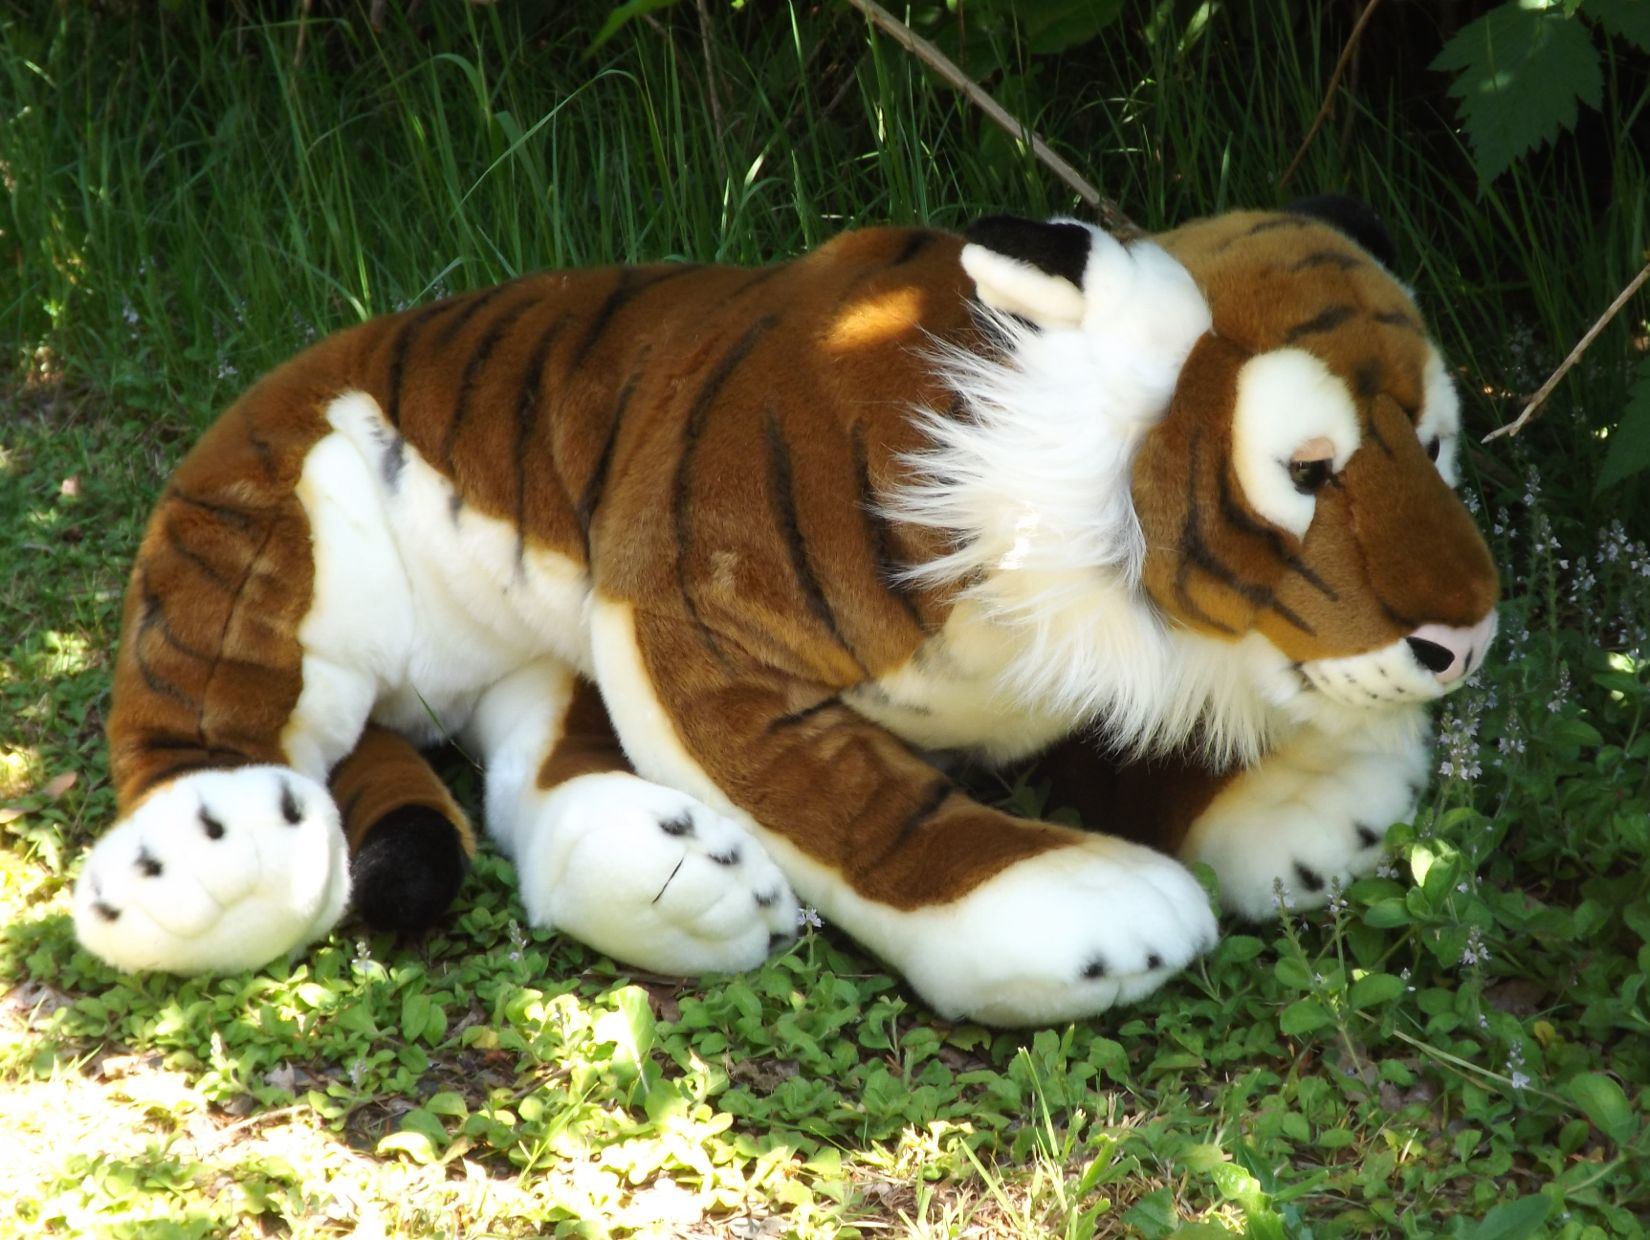 L030038-Large-Stuffed-Animal-Tiger